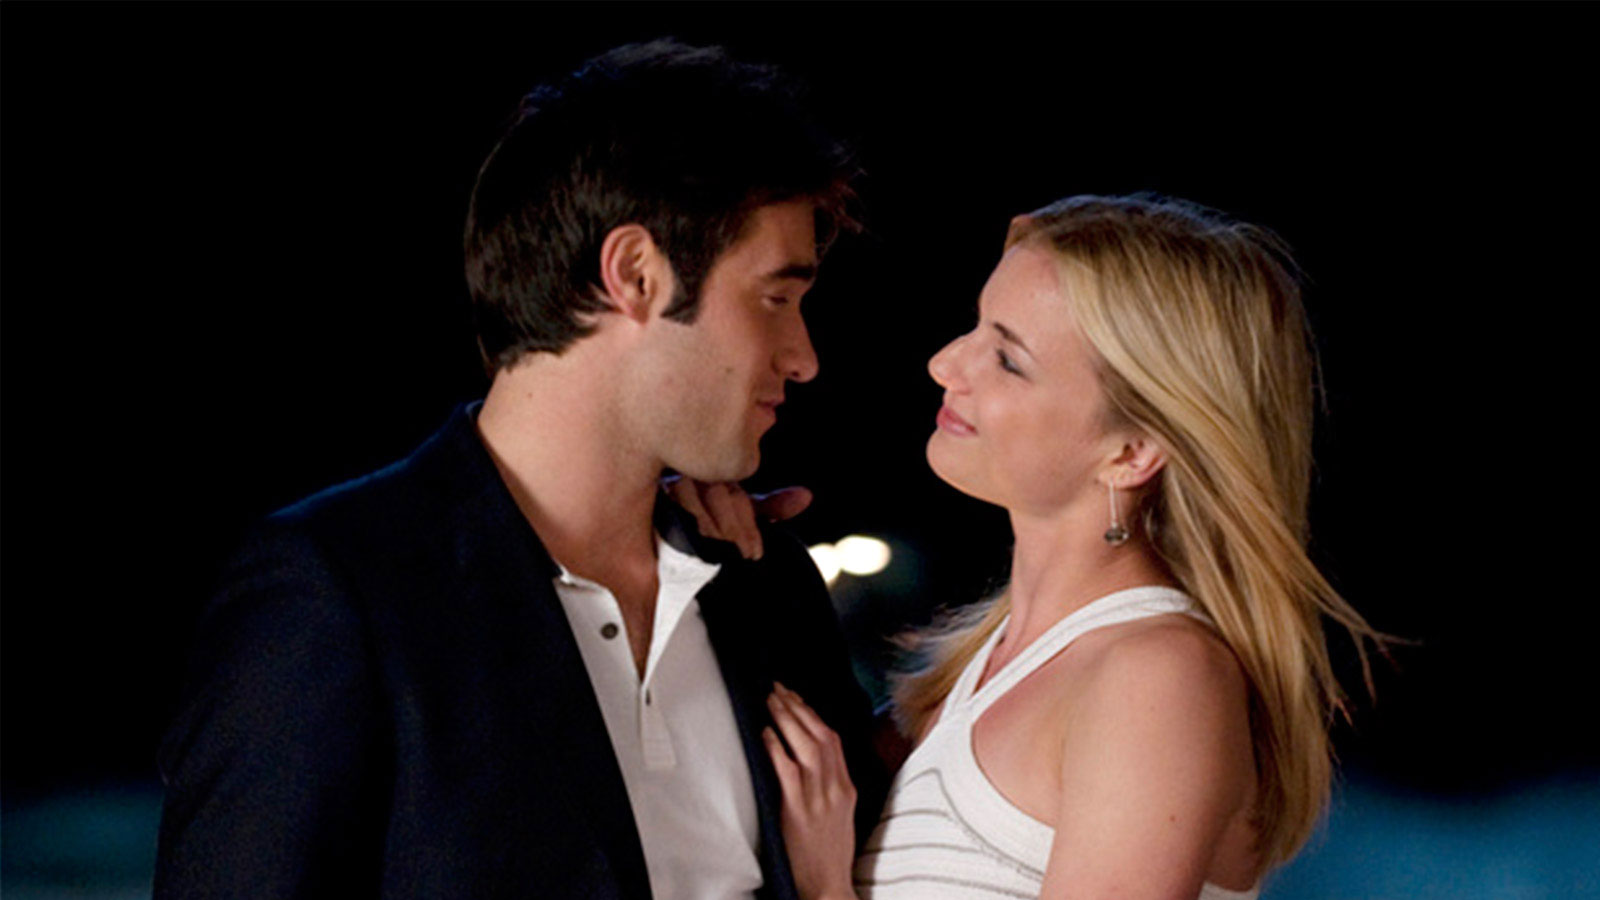 TV Couples Who Dated IRL Emily and Daniel Revenge - On Revenge , Emily VanCamp 's Amanda and Josh Bowman 's Daniel tied the knot. The actors began dating in 2012 after meeting on the series the year before.